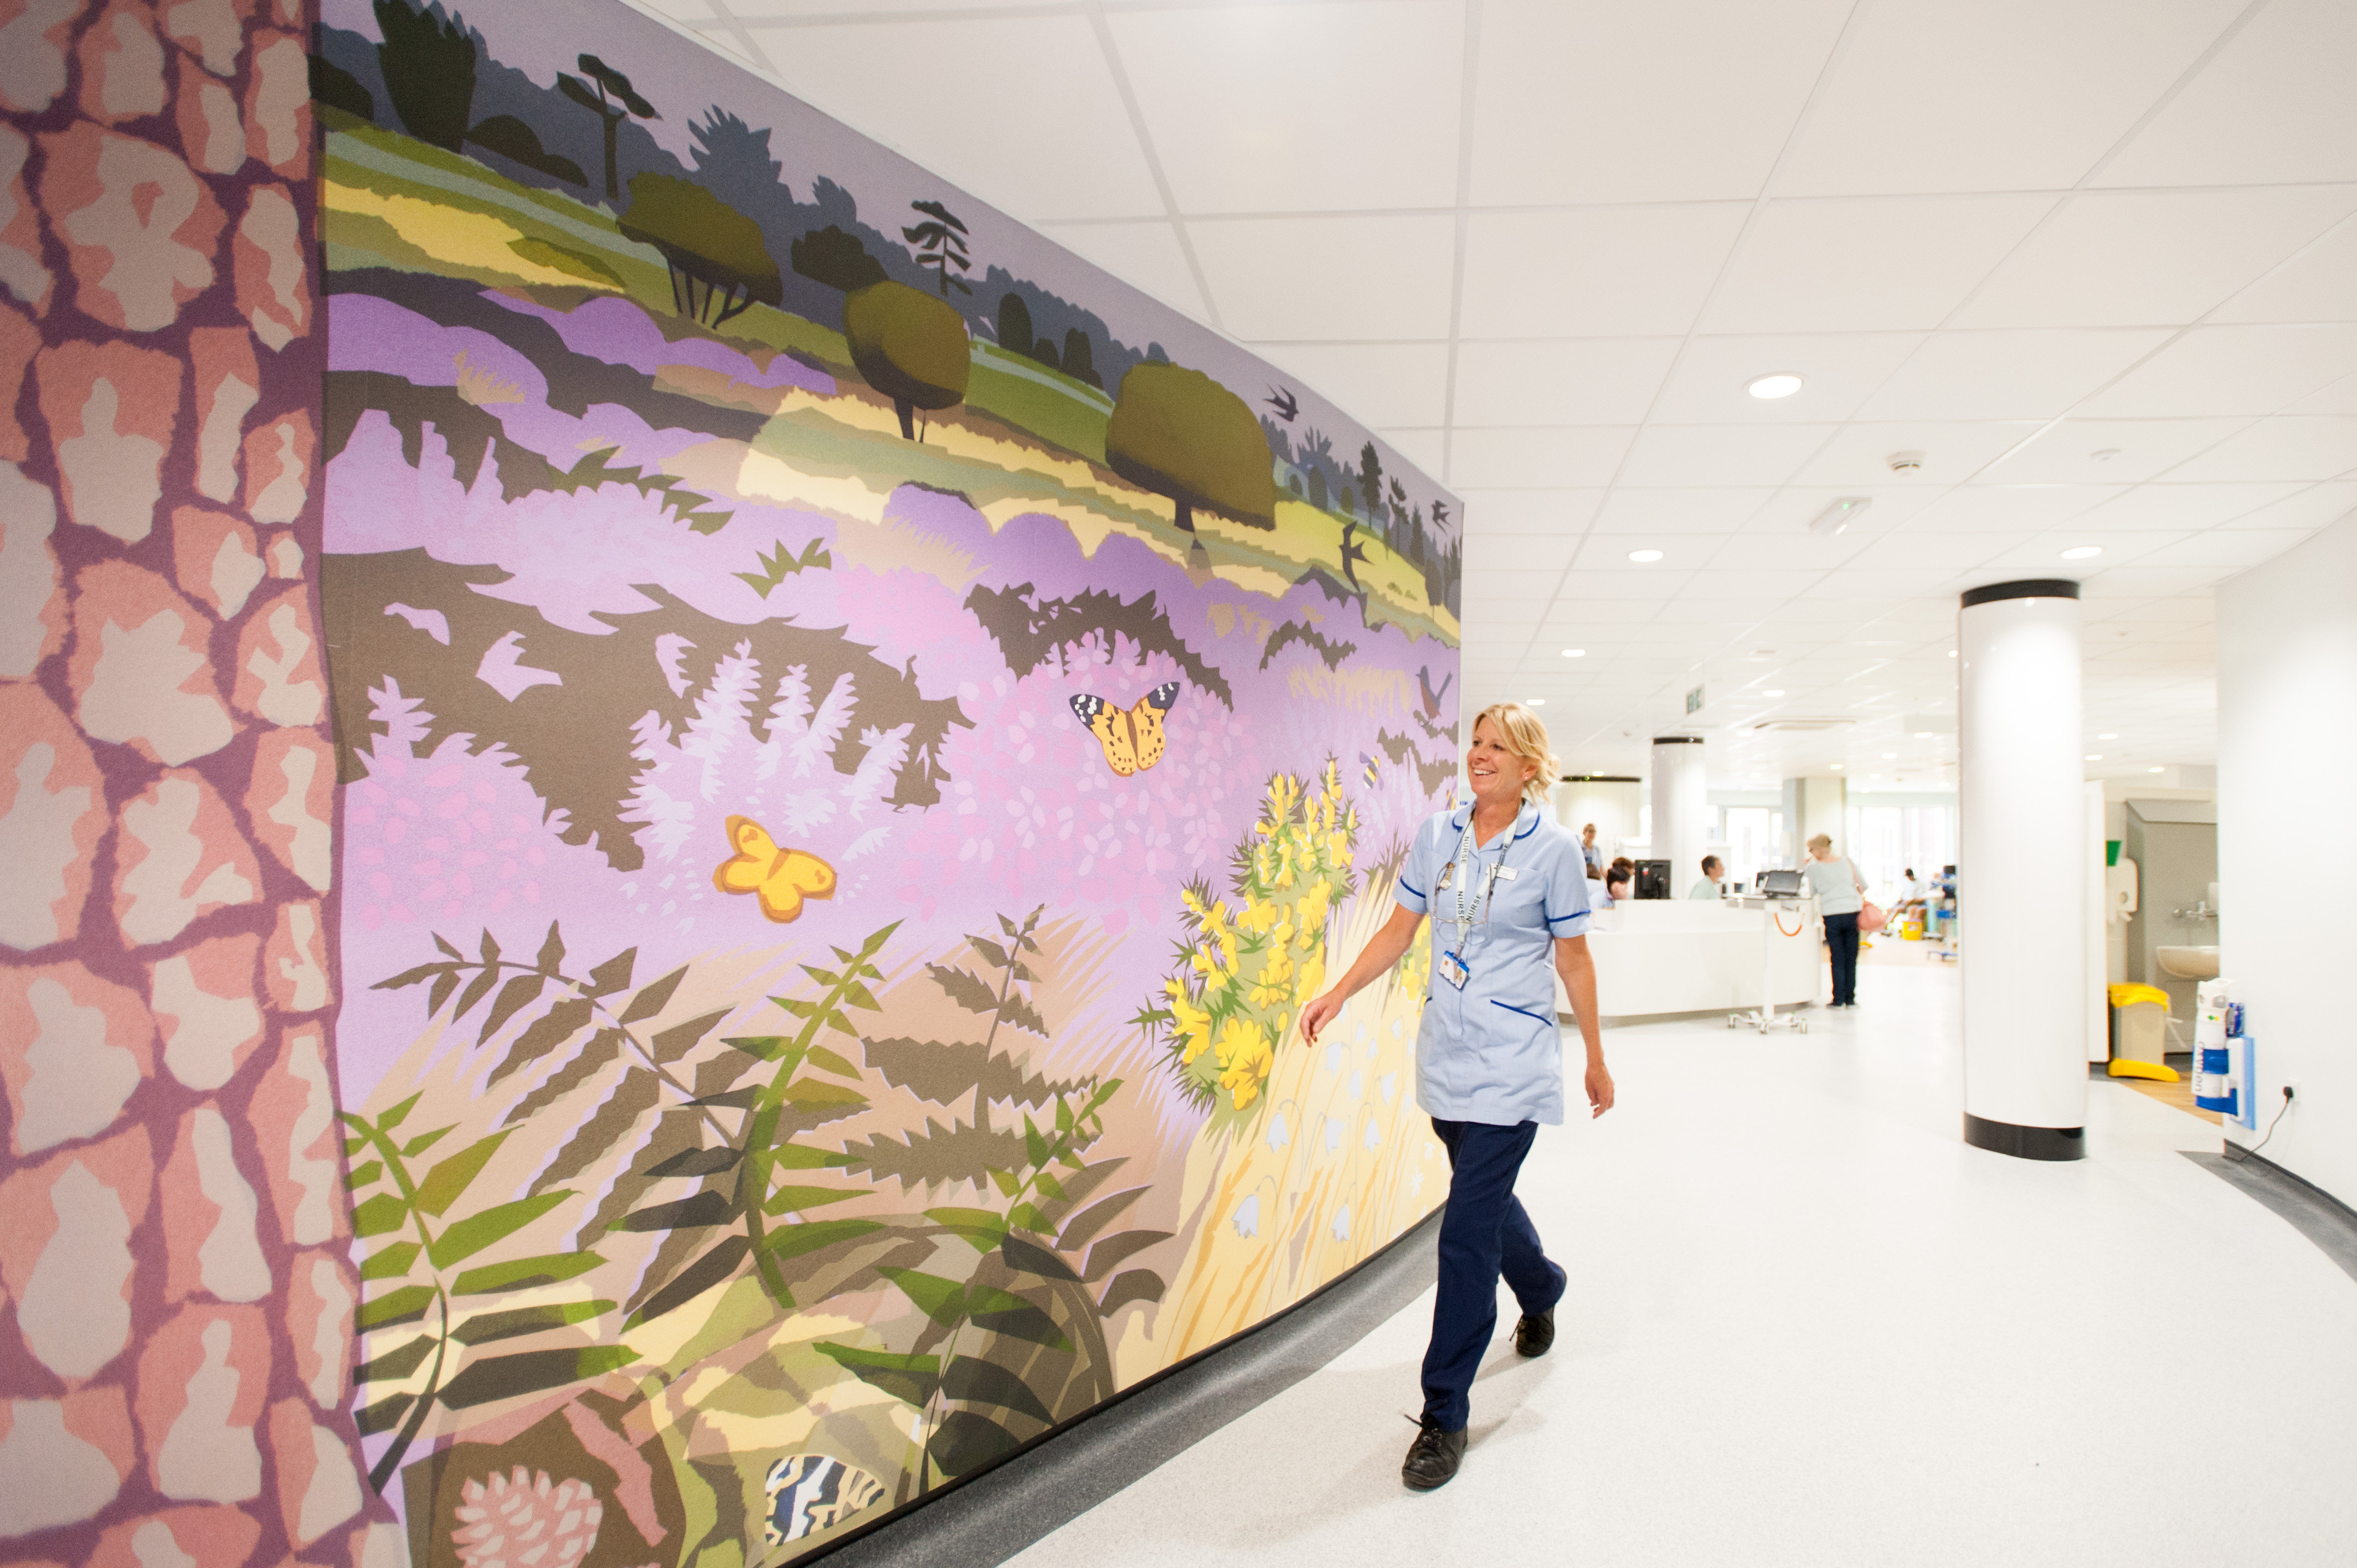 Art work in the Macmillan Woolverstone Centre, Ipswich Hospital. Picture by Clint Randall www.pixelprphotography.co.uk